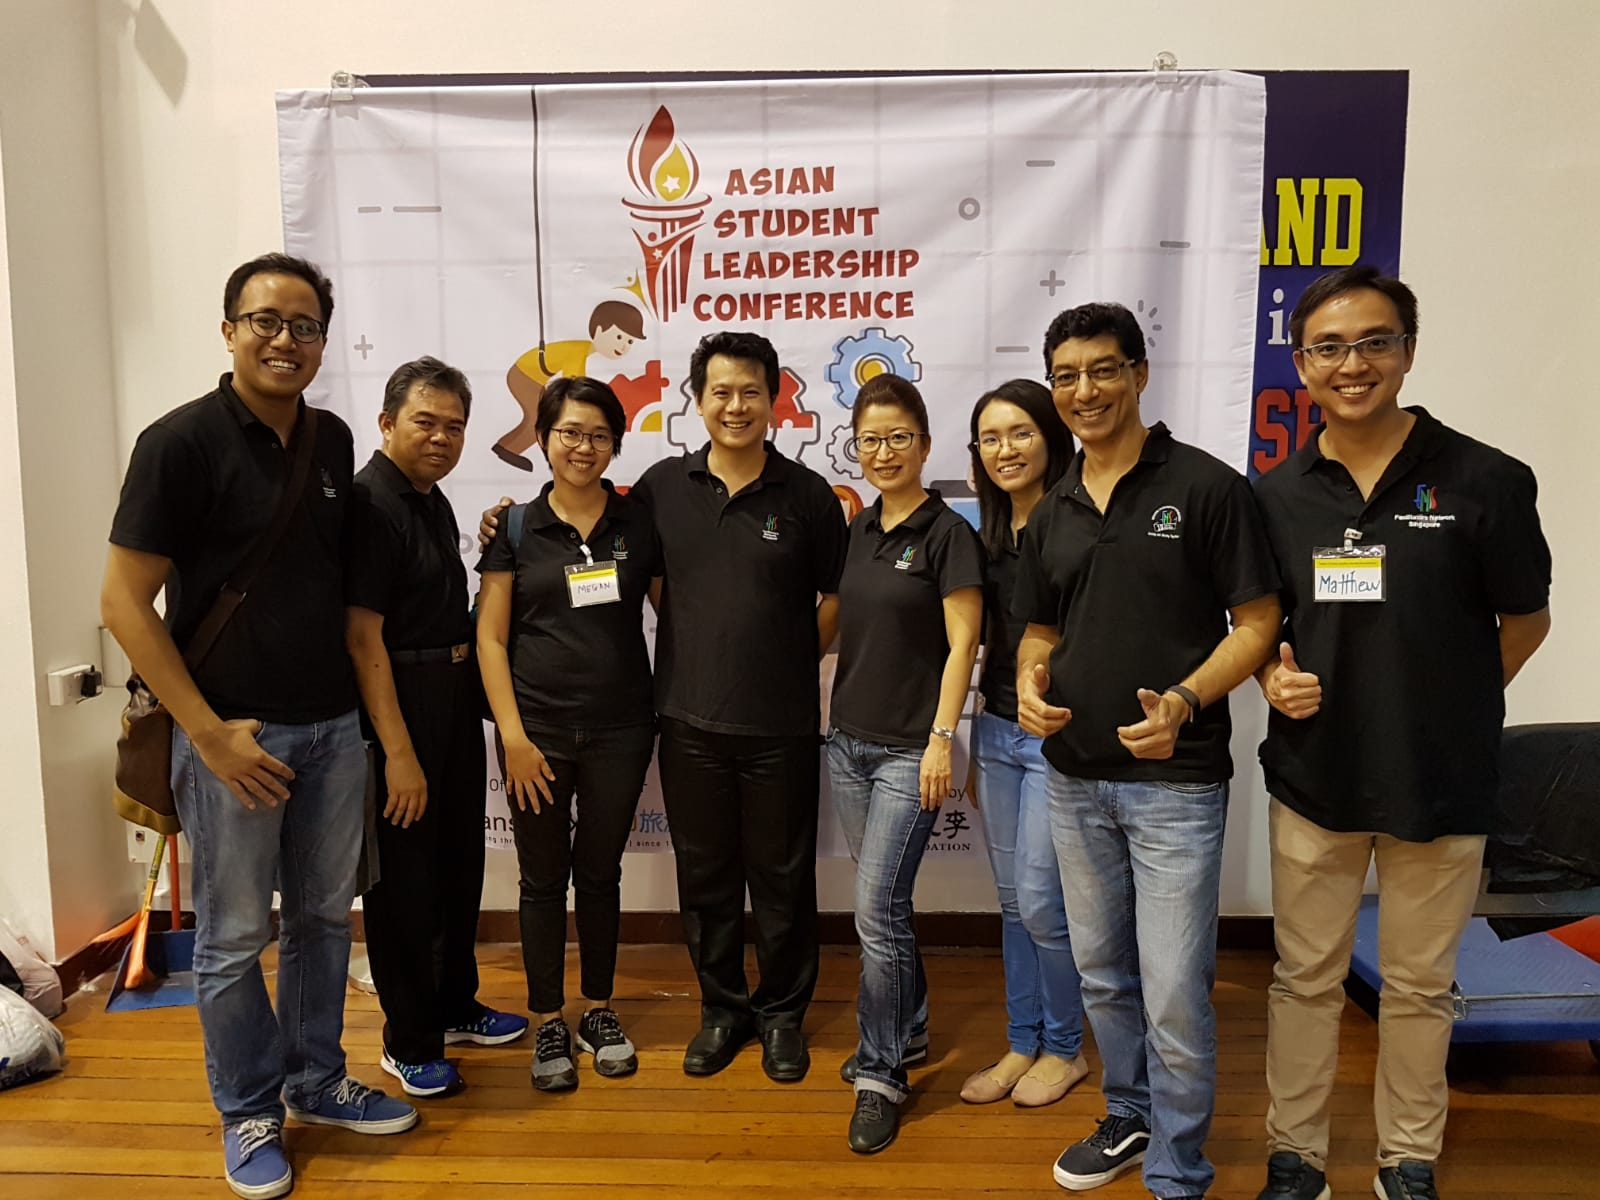 Asian Student Leadership Conference 27 July 2018